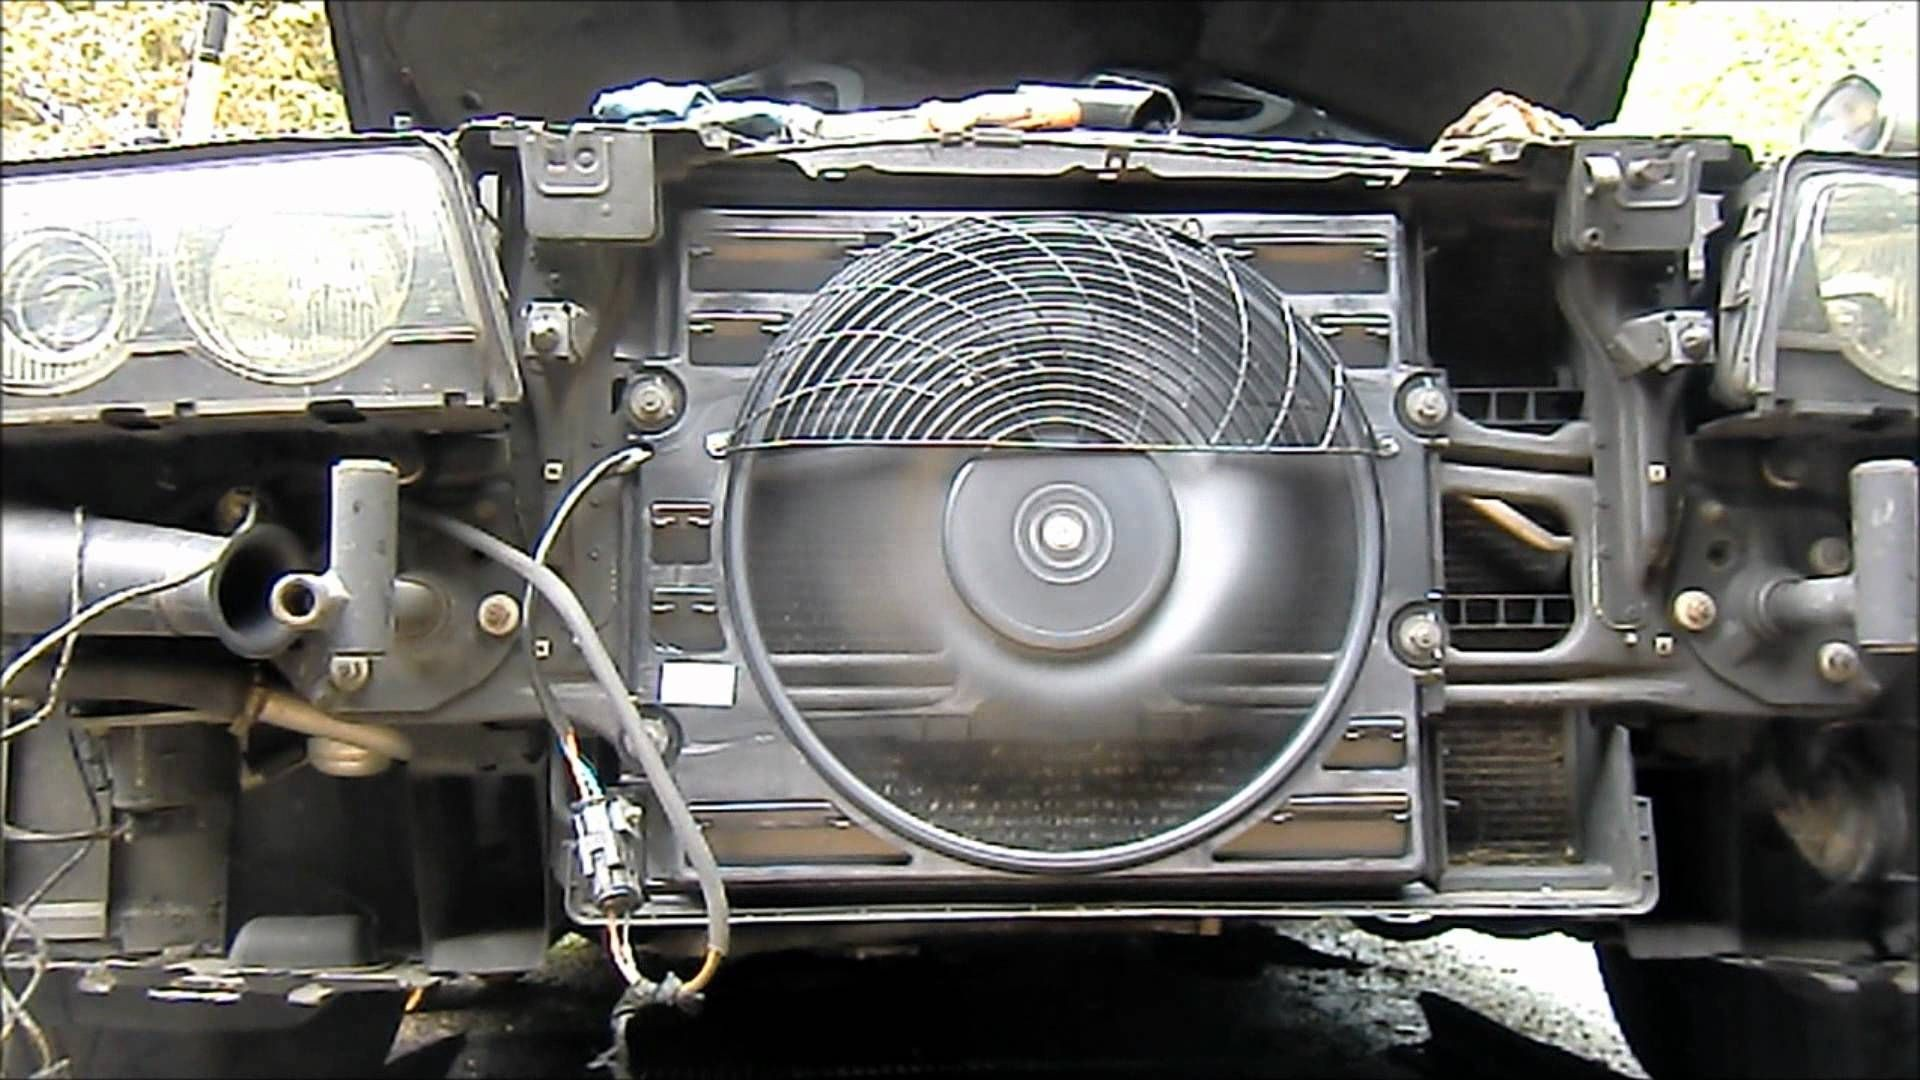 Bmw E38 Parts Diagram How to Diagnose Your Fan if It S In Working order for 10 1998 and Up Of Bmw E38 Parts Diagram